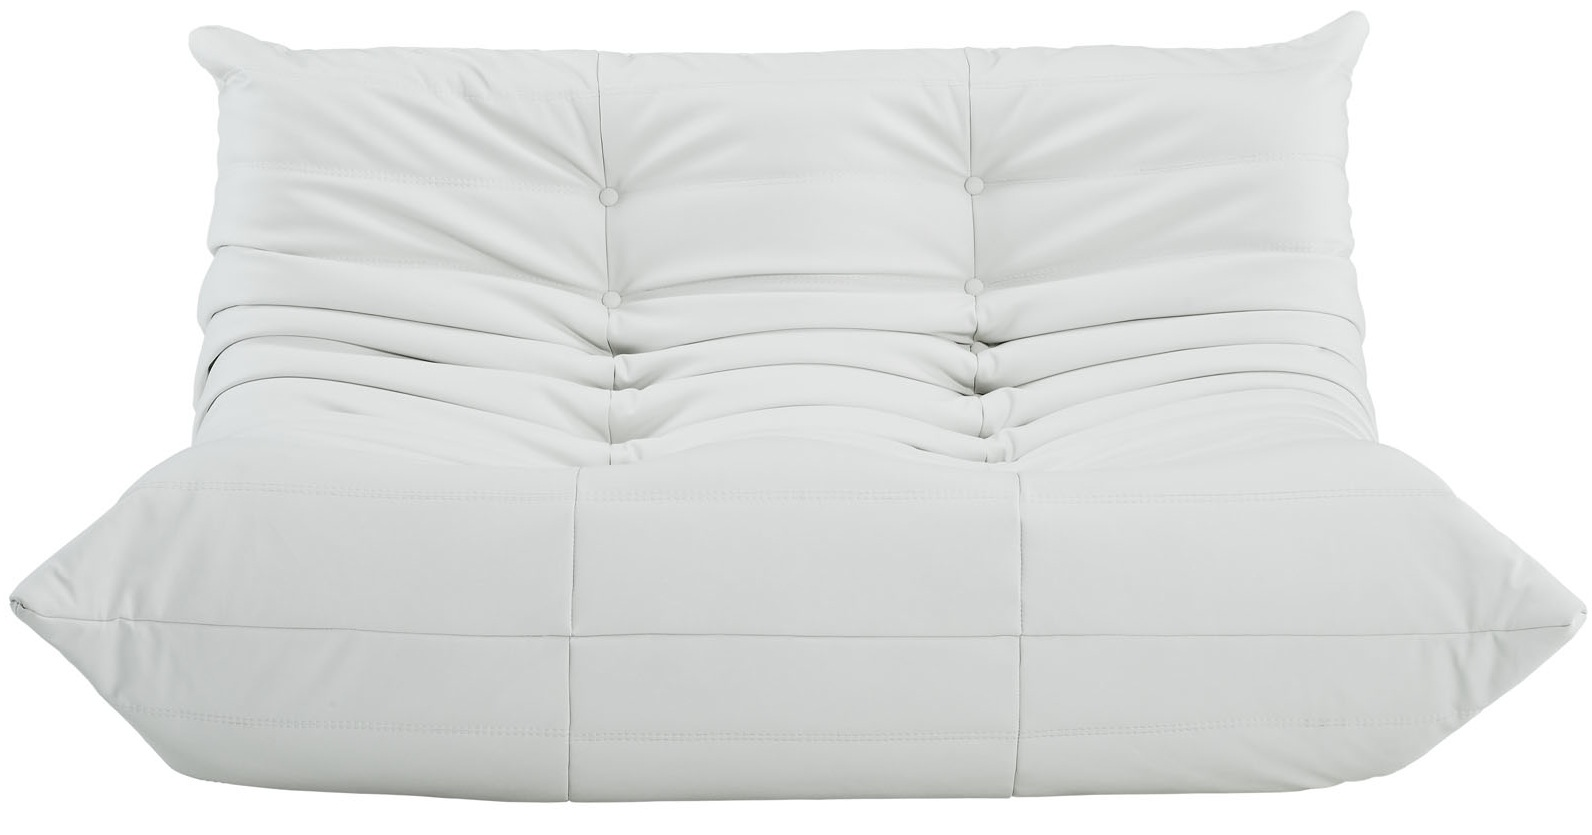 downlow-white-loveseat.jpg